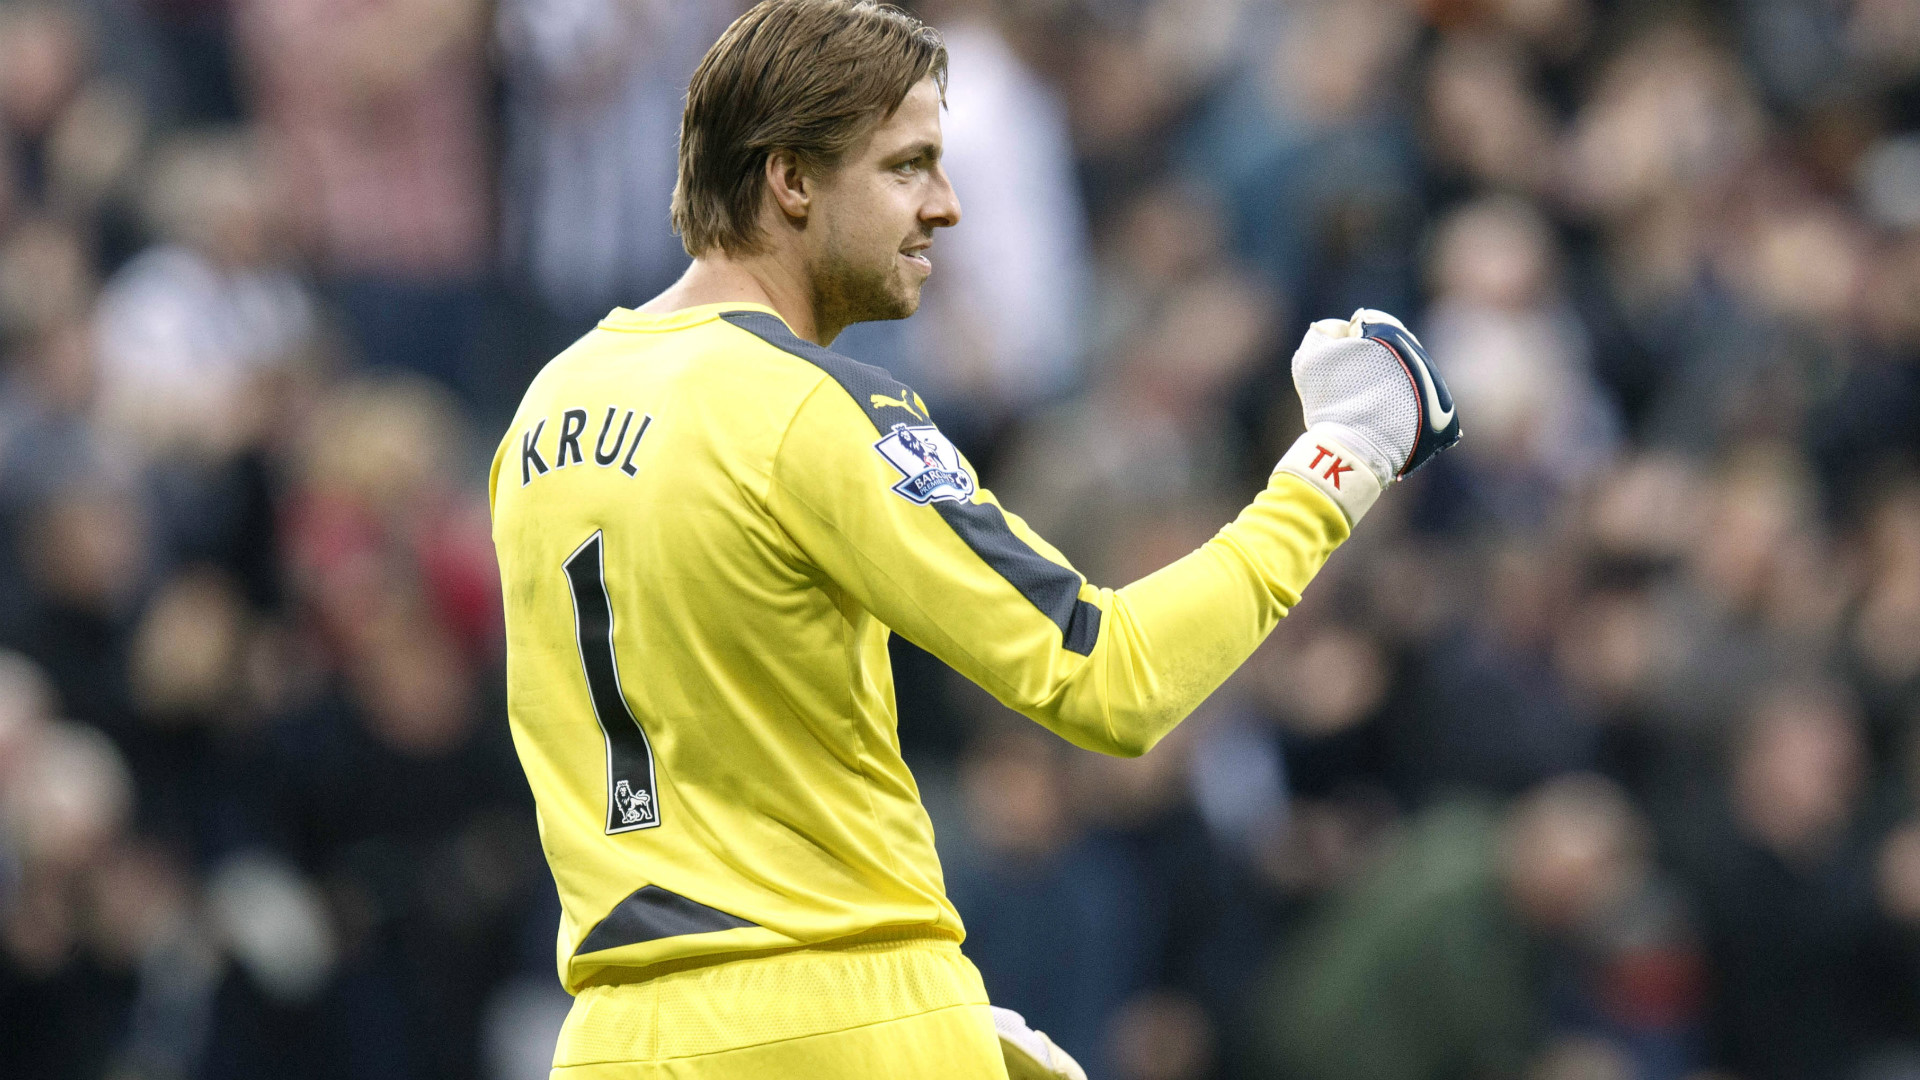 Krul leaves Newcastle to link up with Brighton on loan